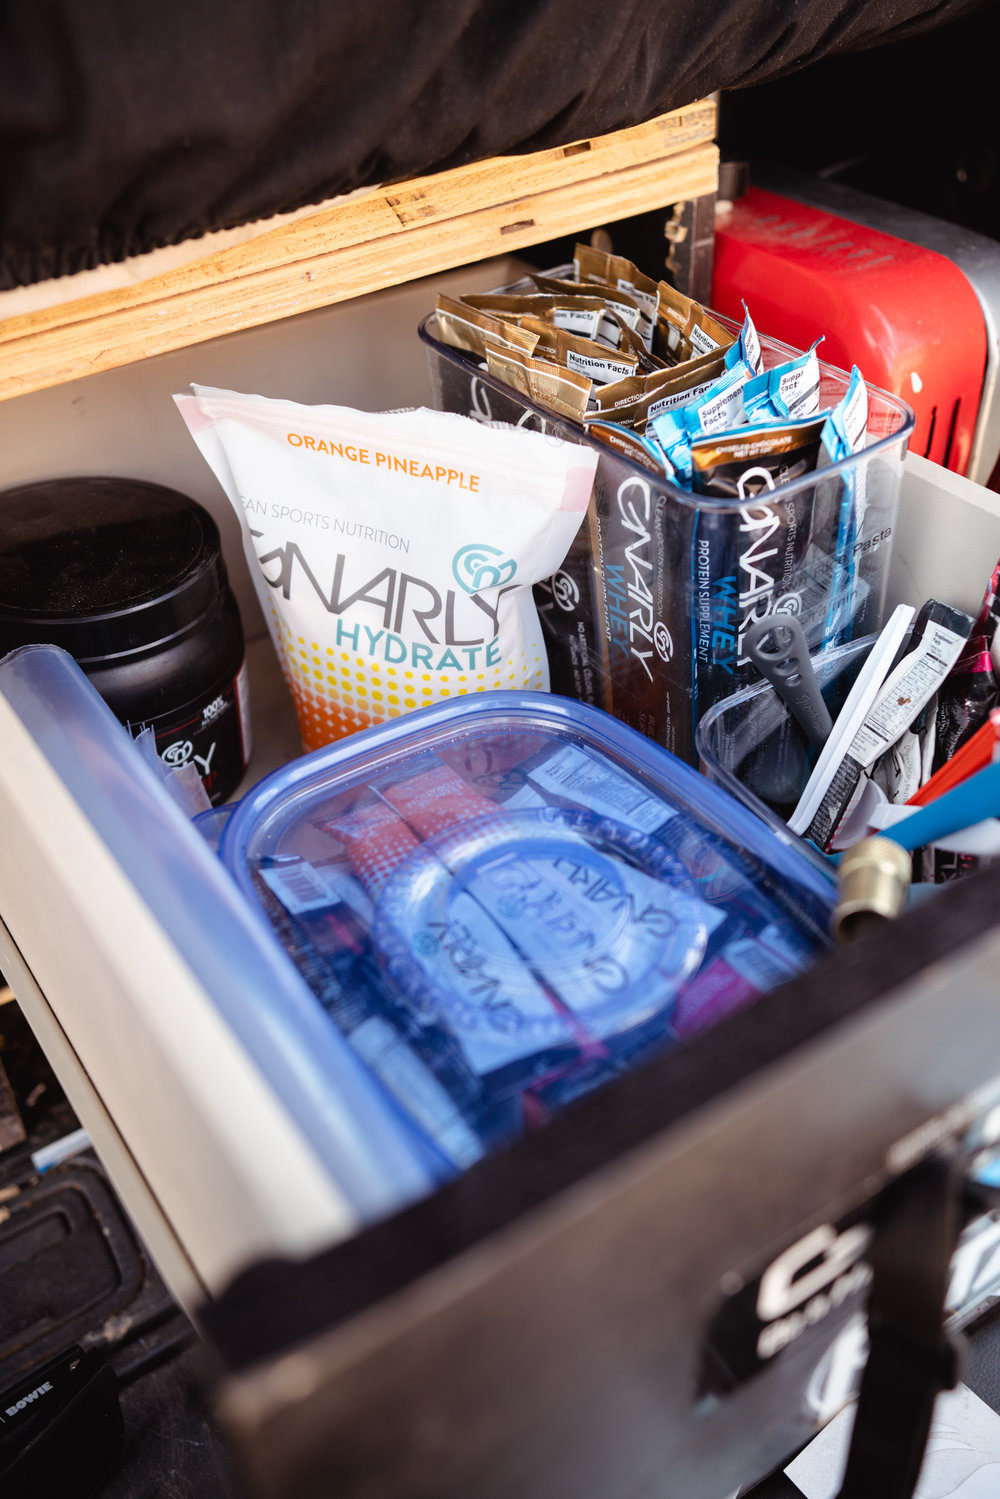 The IKEA drawer… Stuffed with my favorite nutrition brand!